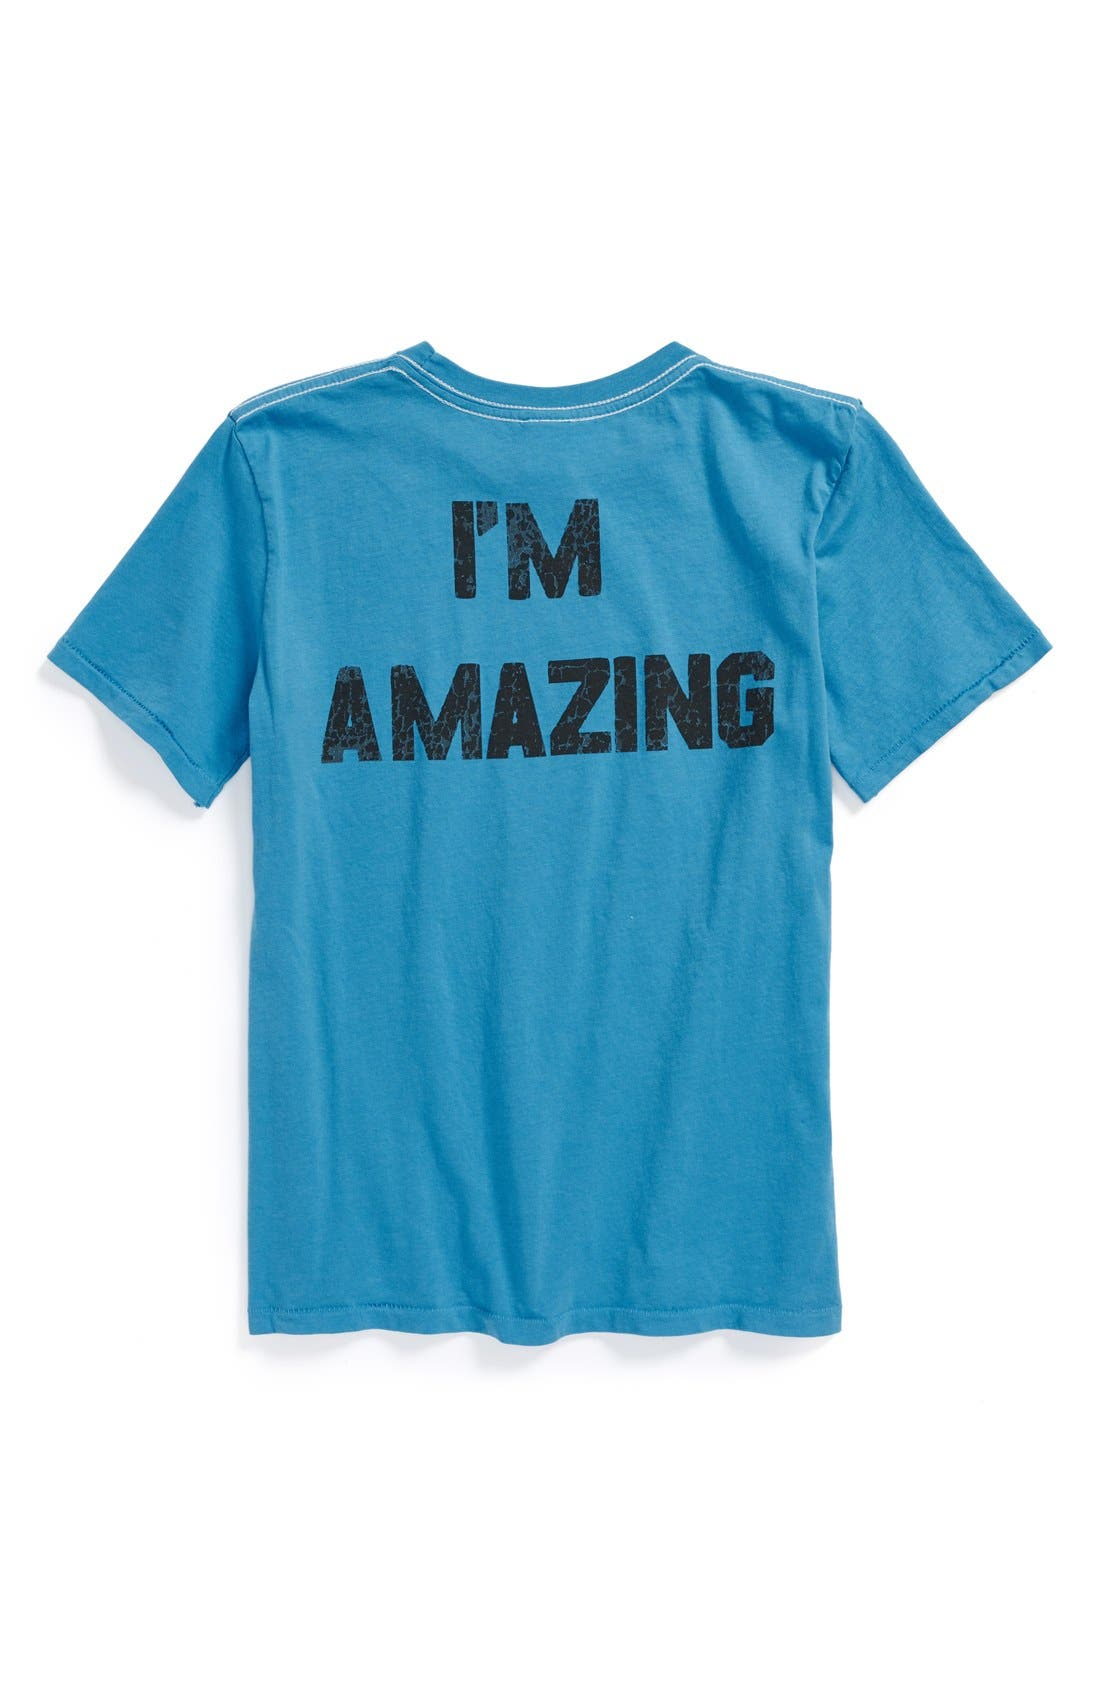 Alternate Image 2  - Junk Food 'I'm Amazing' T-Shirt (Little Boys)